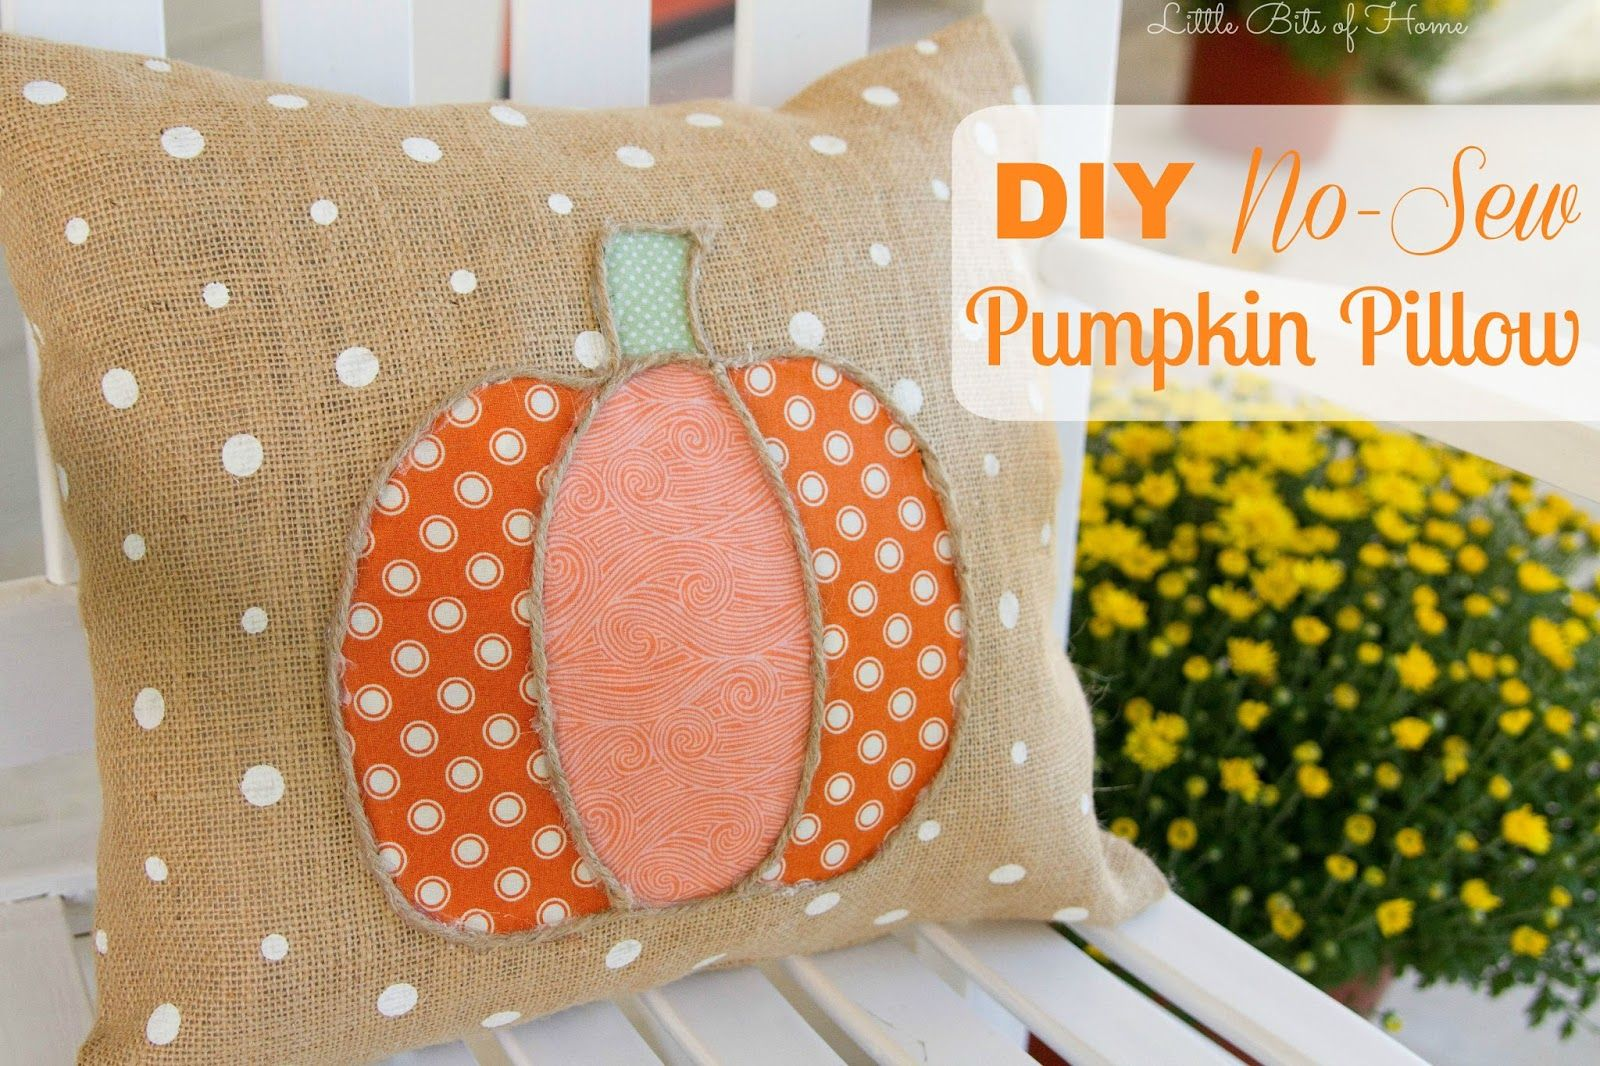 Little Bits of Home: DIY No-Sew Pumpkin Pillow using scraps of coordinating fabrics and burlap. The polka dotted burlap was purchased at Joann\u0027s. & Little Bits of Home: DIY No-Sew Pumpkin Pillow. So easy to make ... pillowsntoast.com